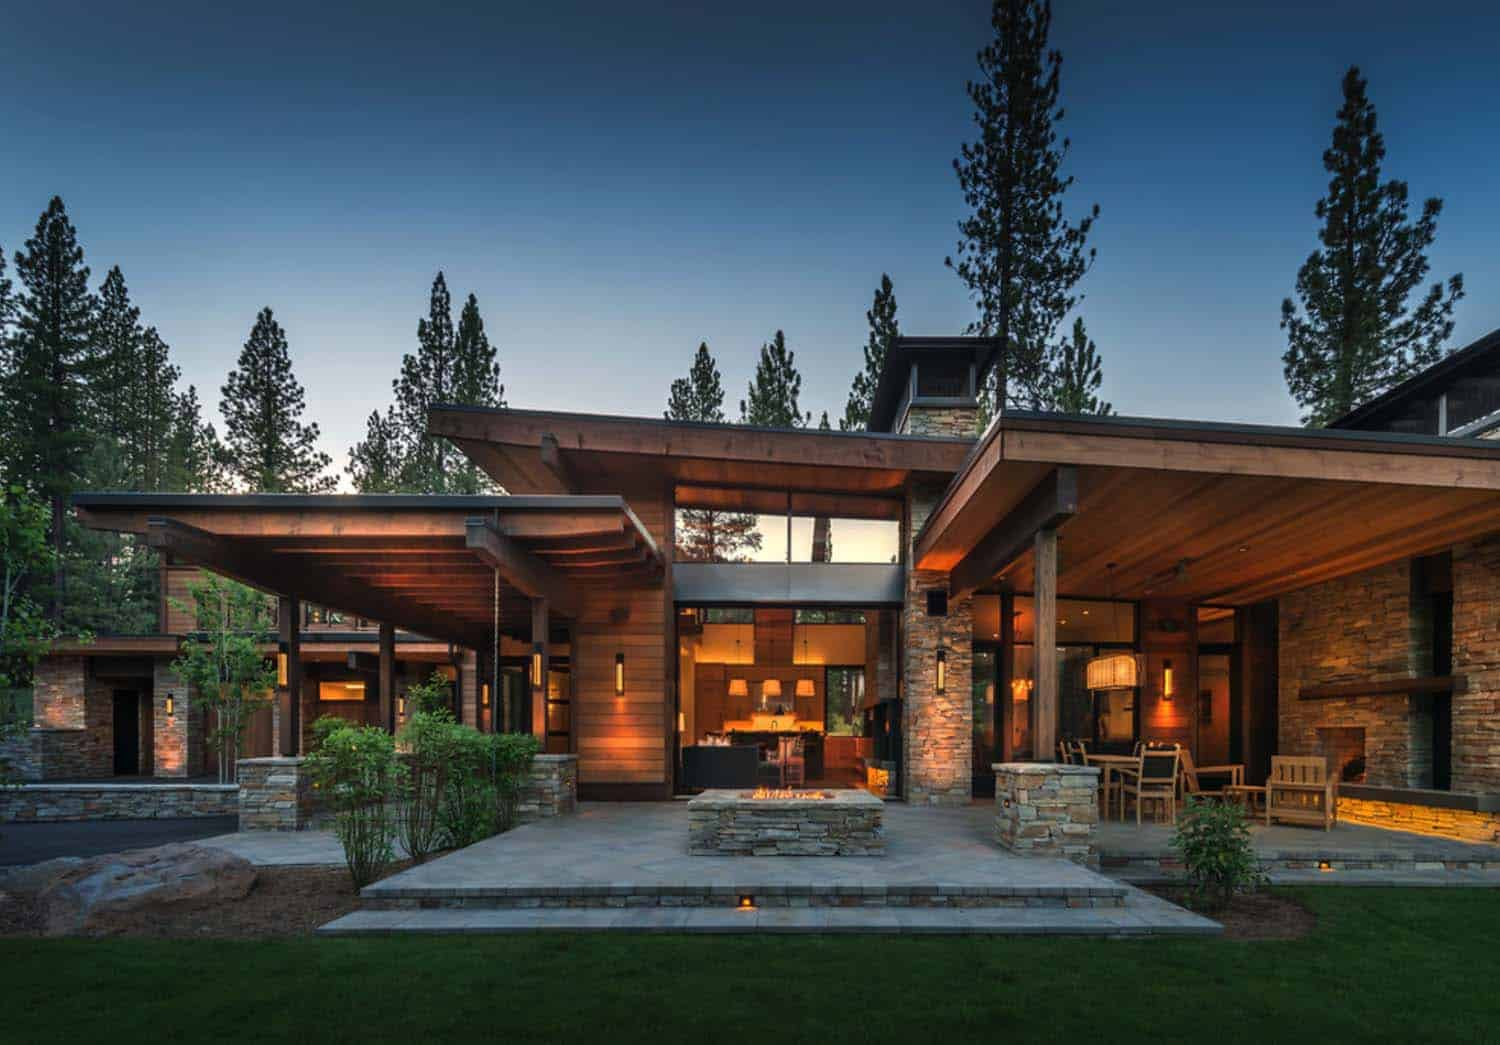 Mountain modern home in martis camp with indoor outdoor living for Modern mountain house plans